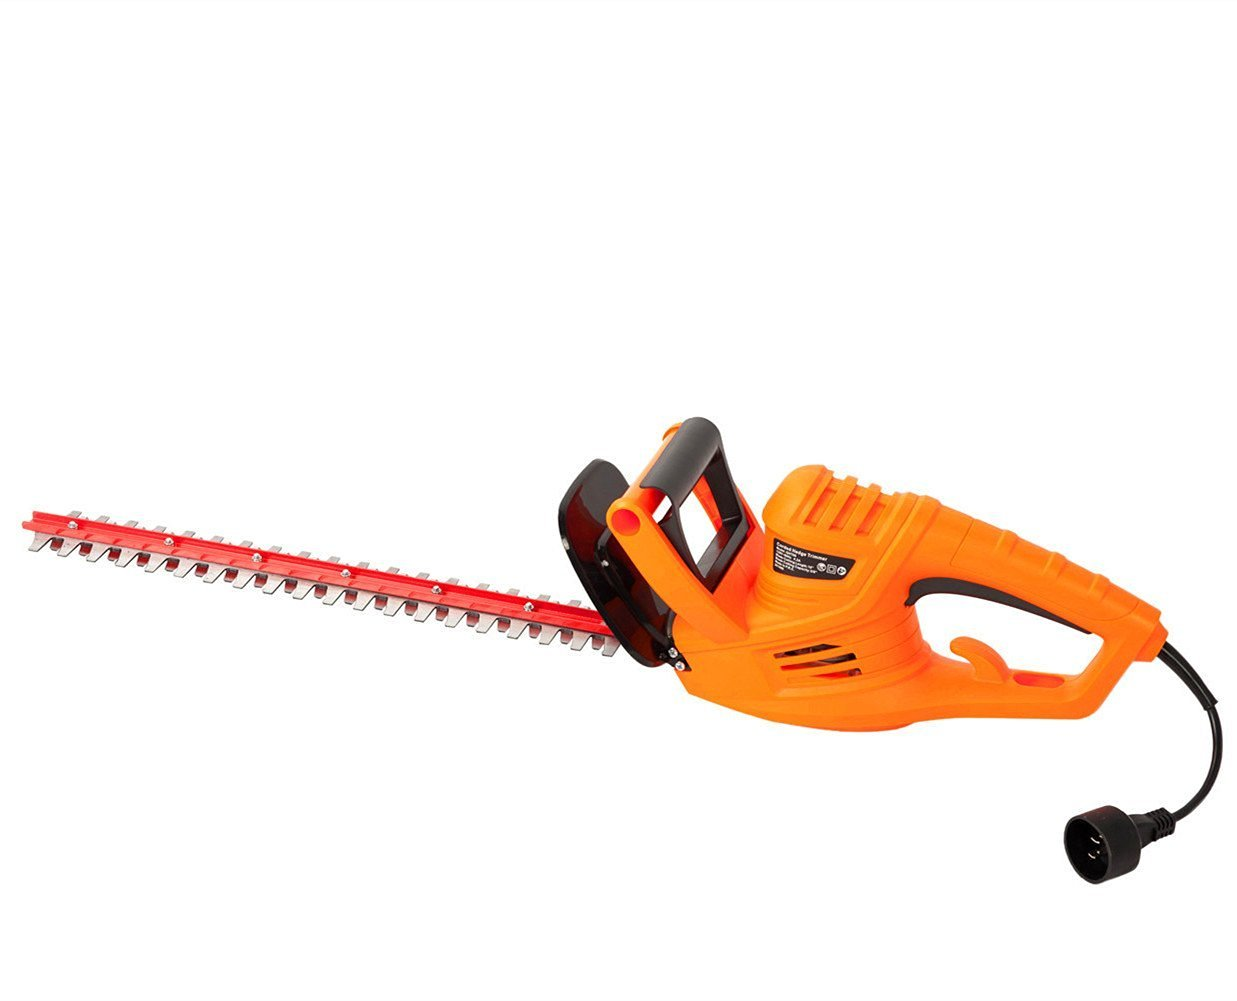 GARCARE 4.2-Amp Corded Hedge Trimmer with 18-Inch Laser Cutting Blade, Blade Cover Included